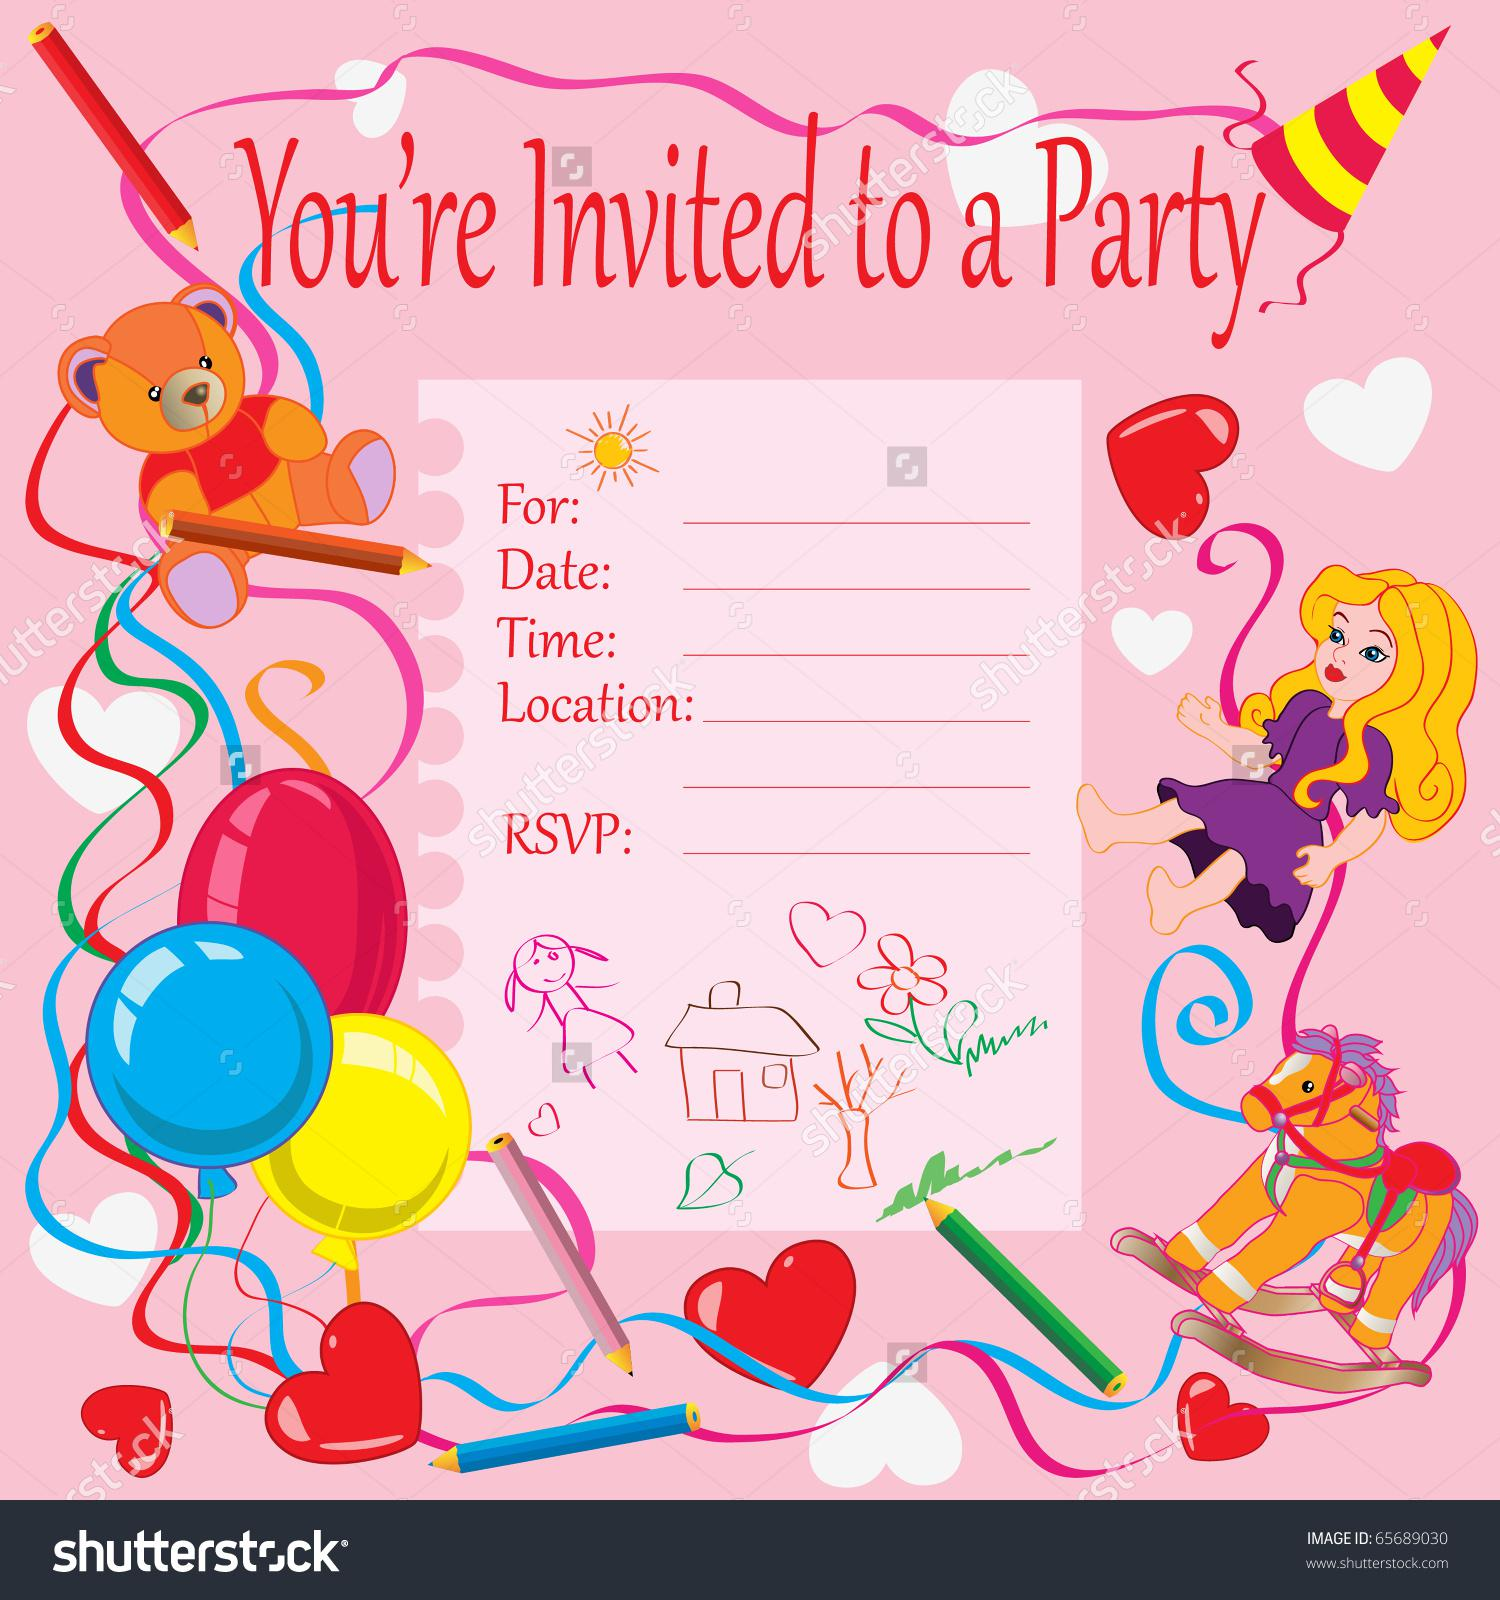 Kids birthday invitation card yeniscale kids birthday invitation card stopboris Images